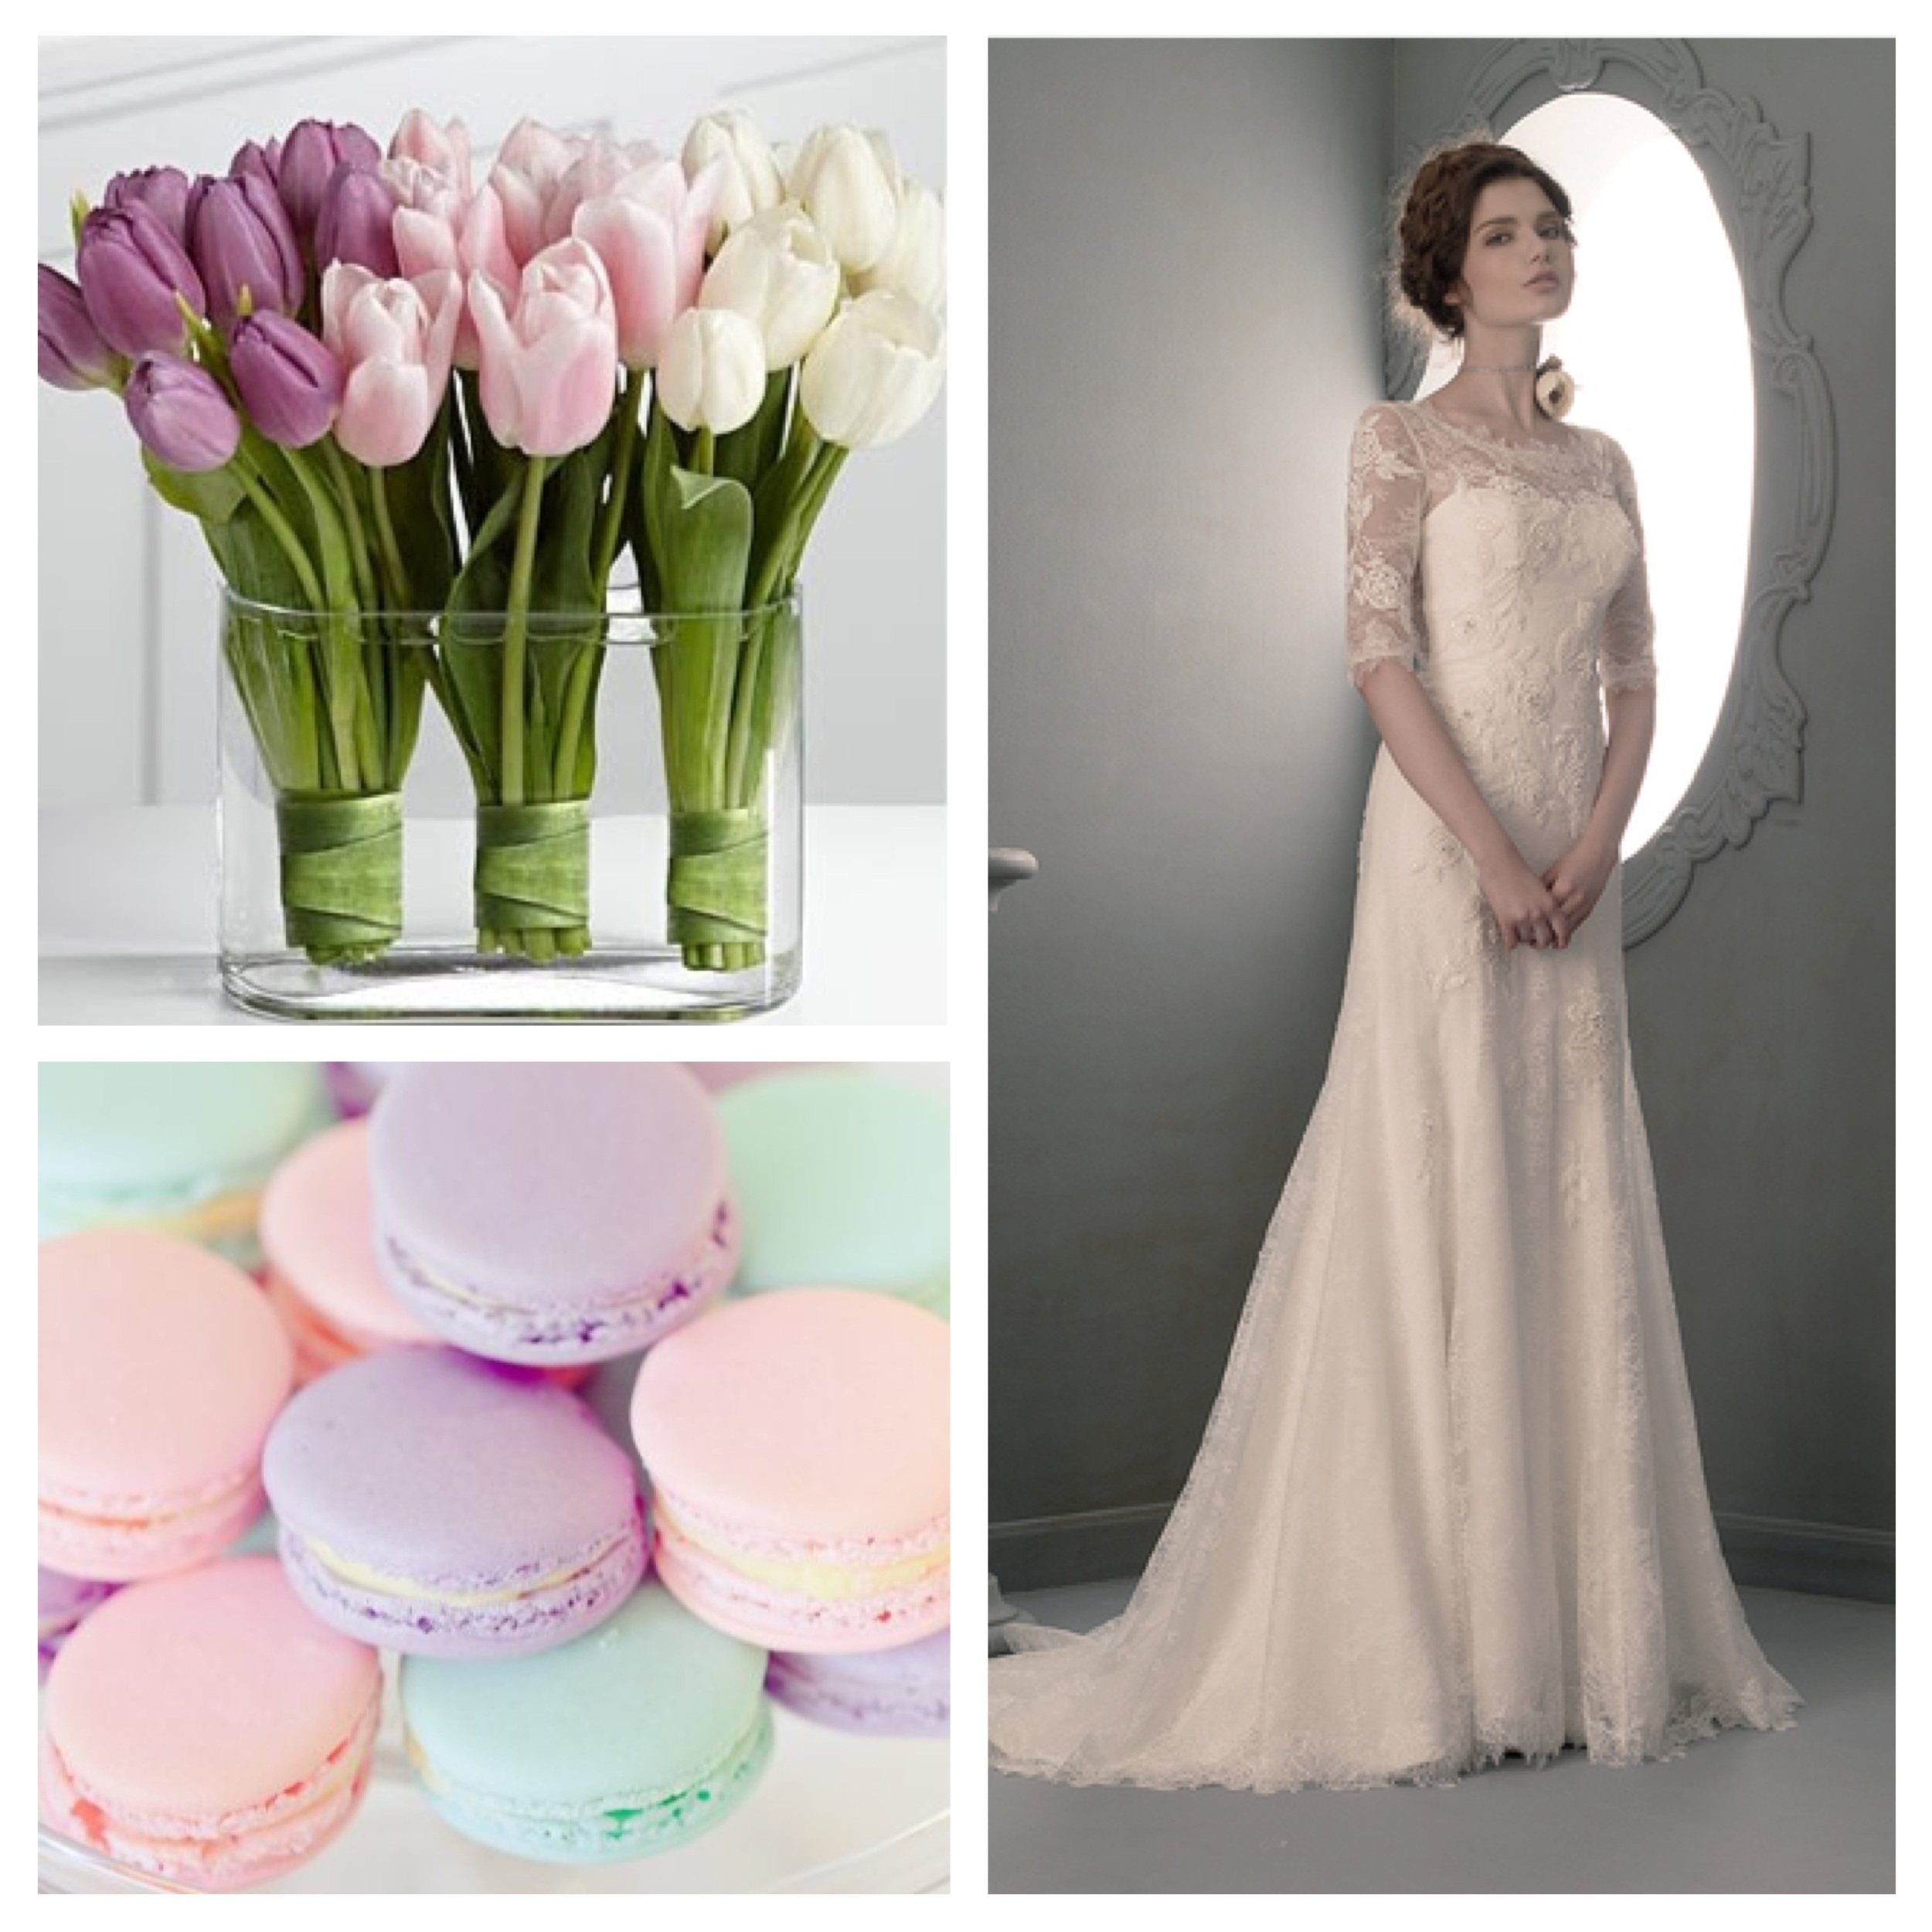 Tulips ,  Macaroons,   St. Pucchi 702